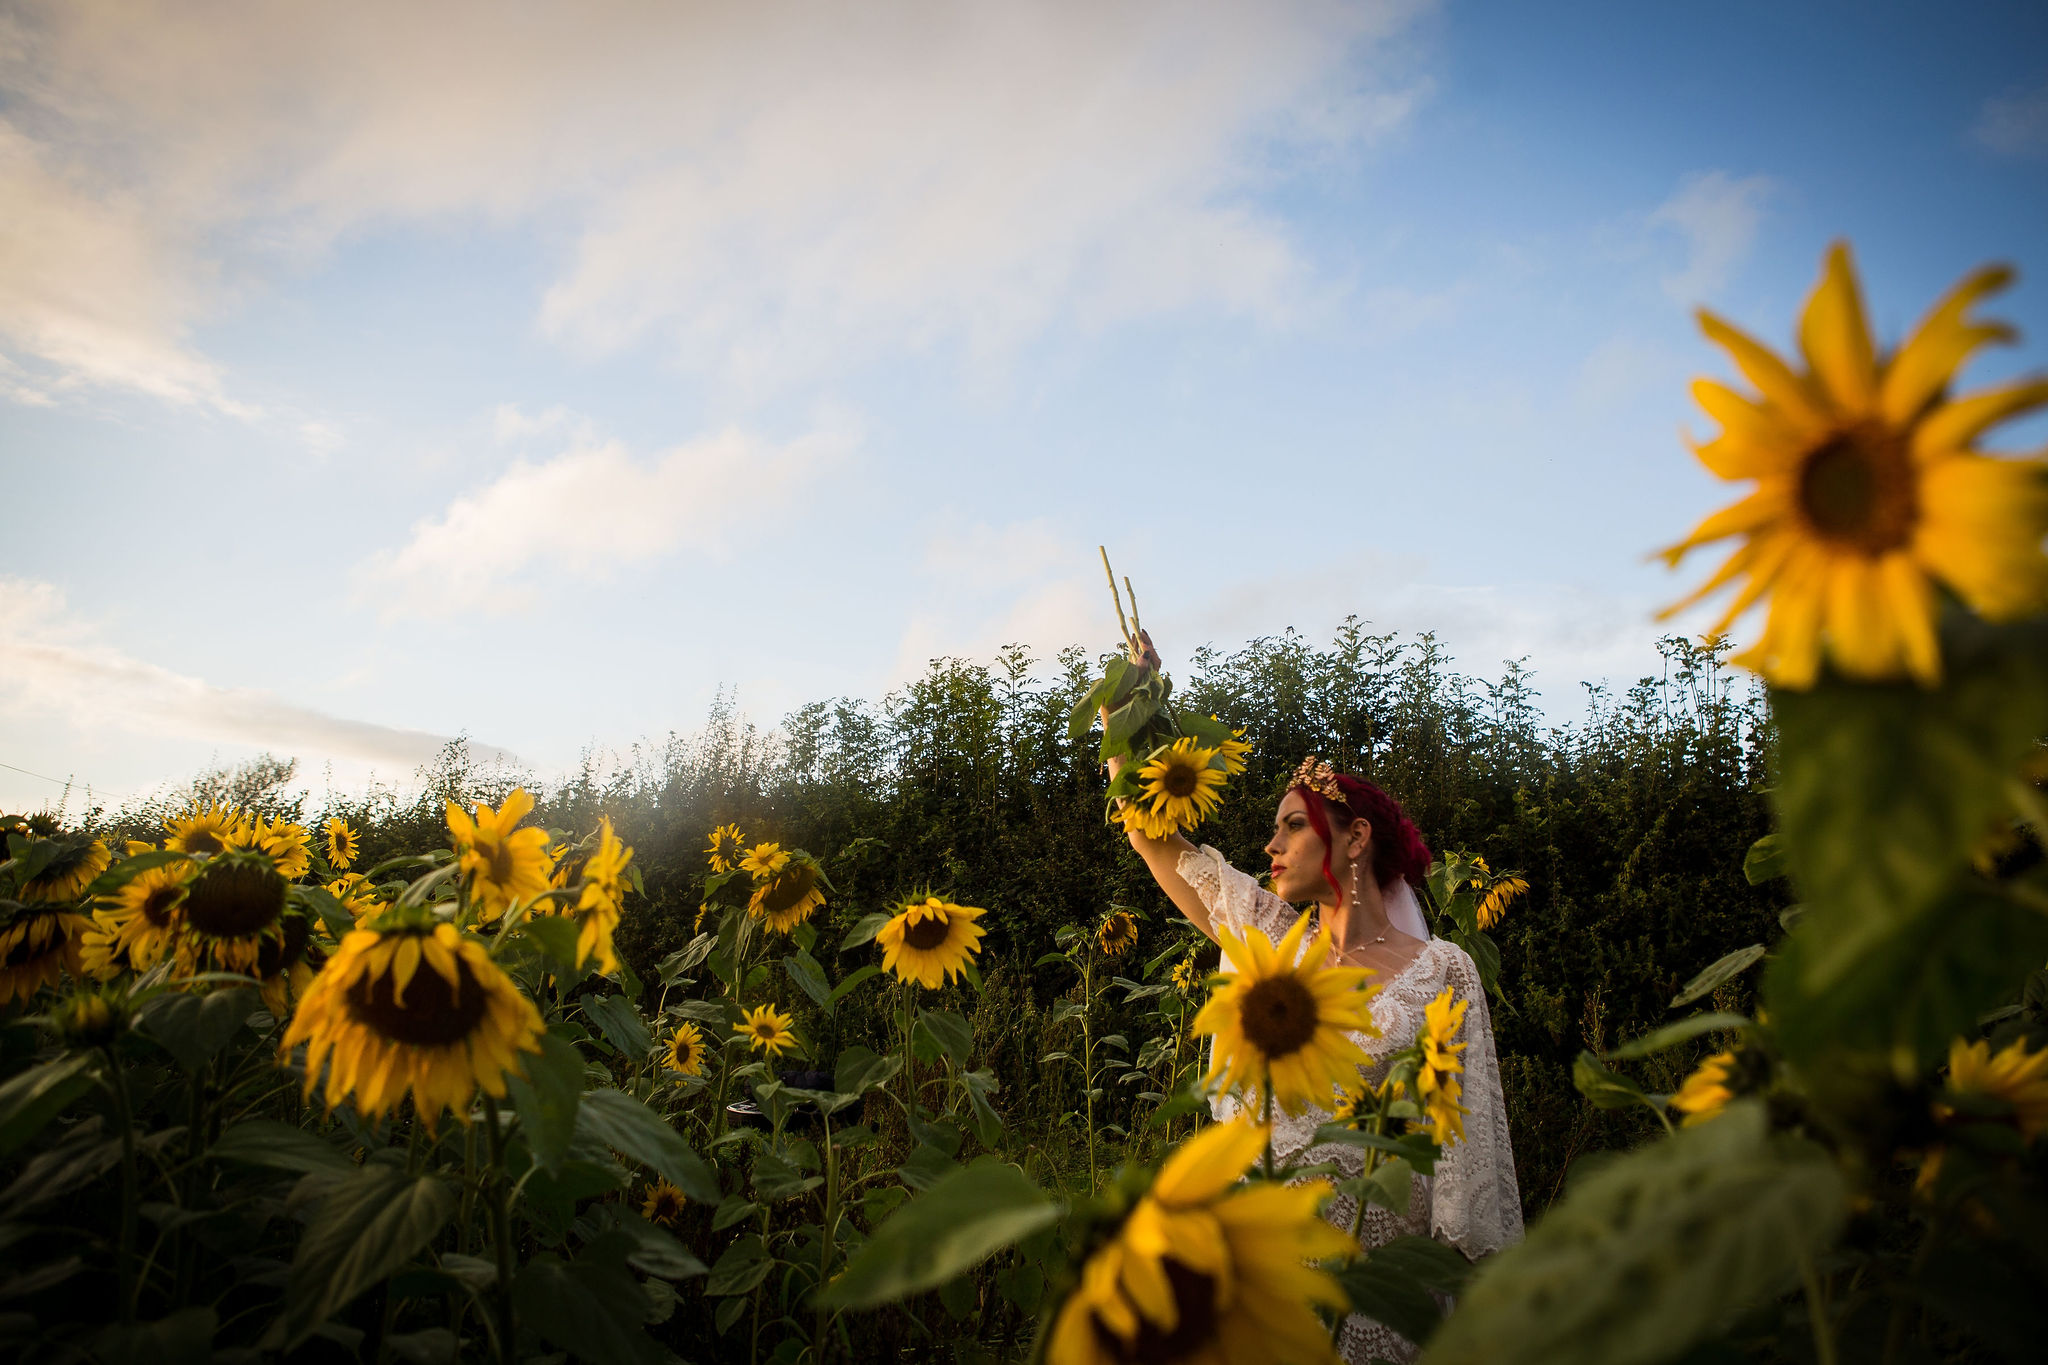 sunflower themed wedding - unconventional wedding - sunflower wedding - autumn wedding - alternative wedding planning - bride in a field of sunflowers